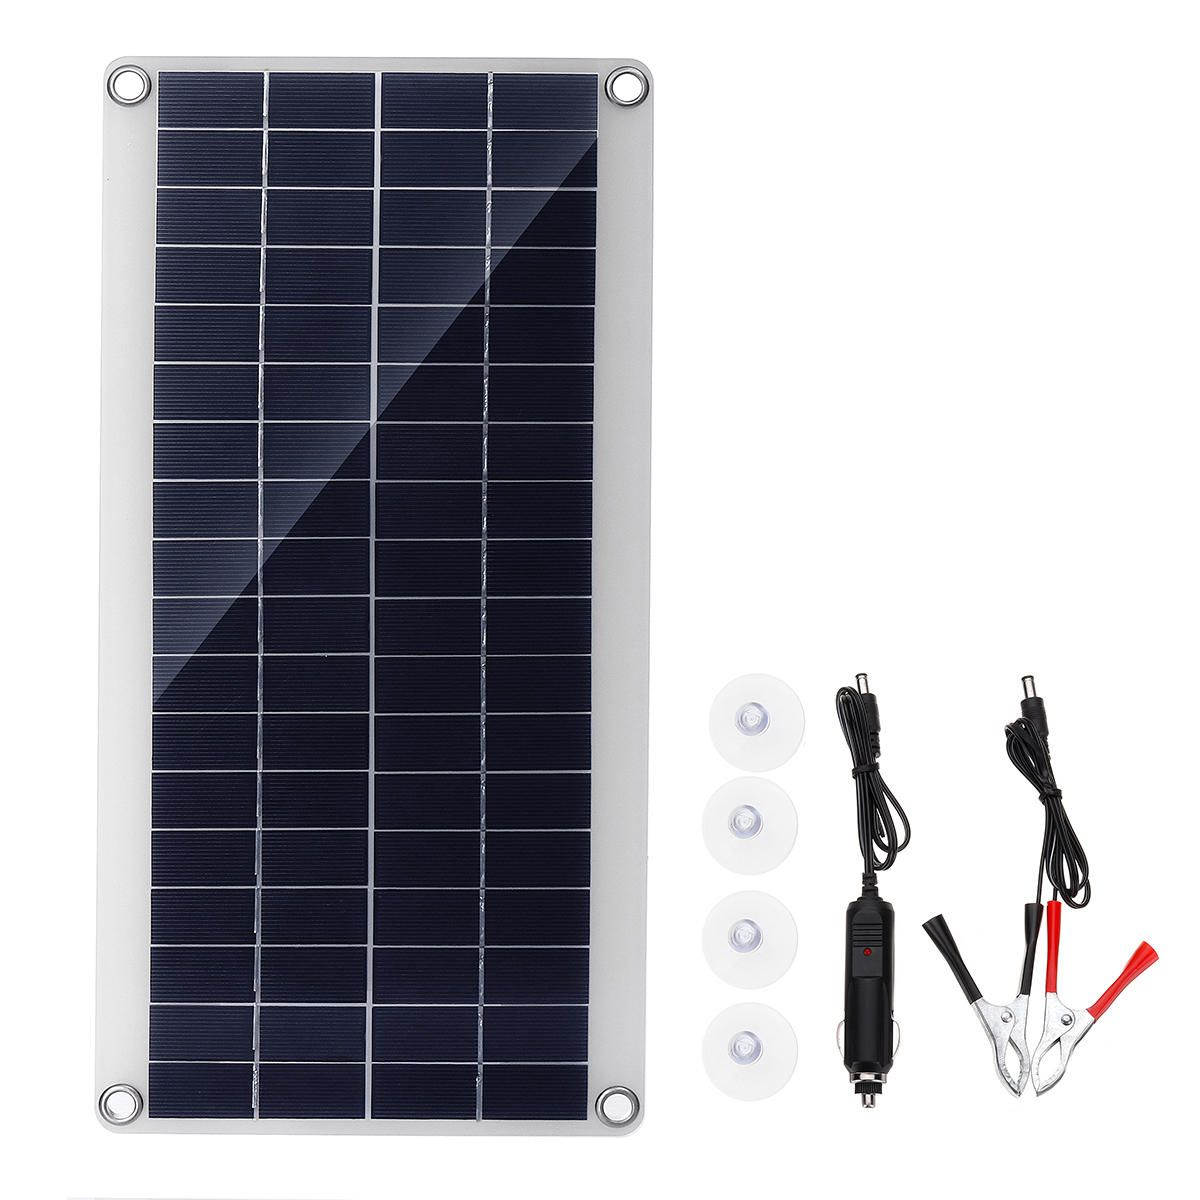 15w Portable Solar Panel Kit Dc Usb Charging Double Usb Port Suction Cups Camping Traveling Solar Panels Solar Panel Kits Portable Solar Panels